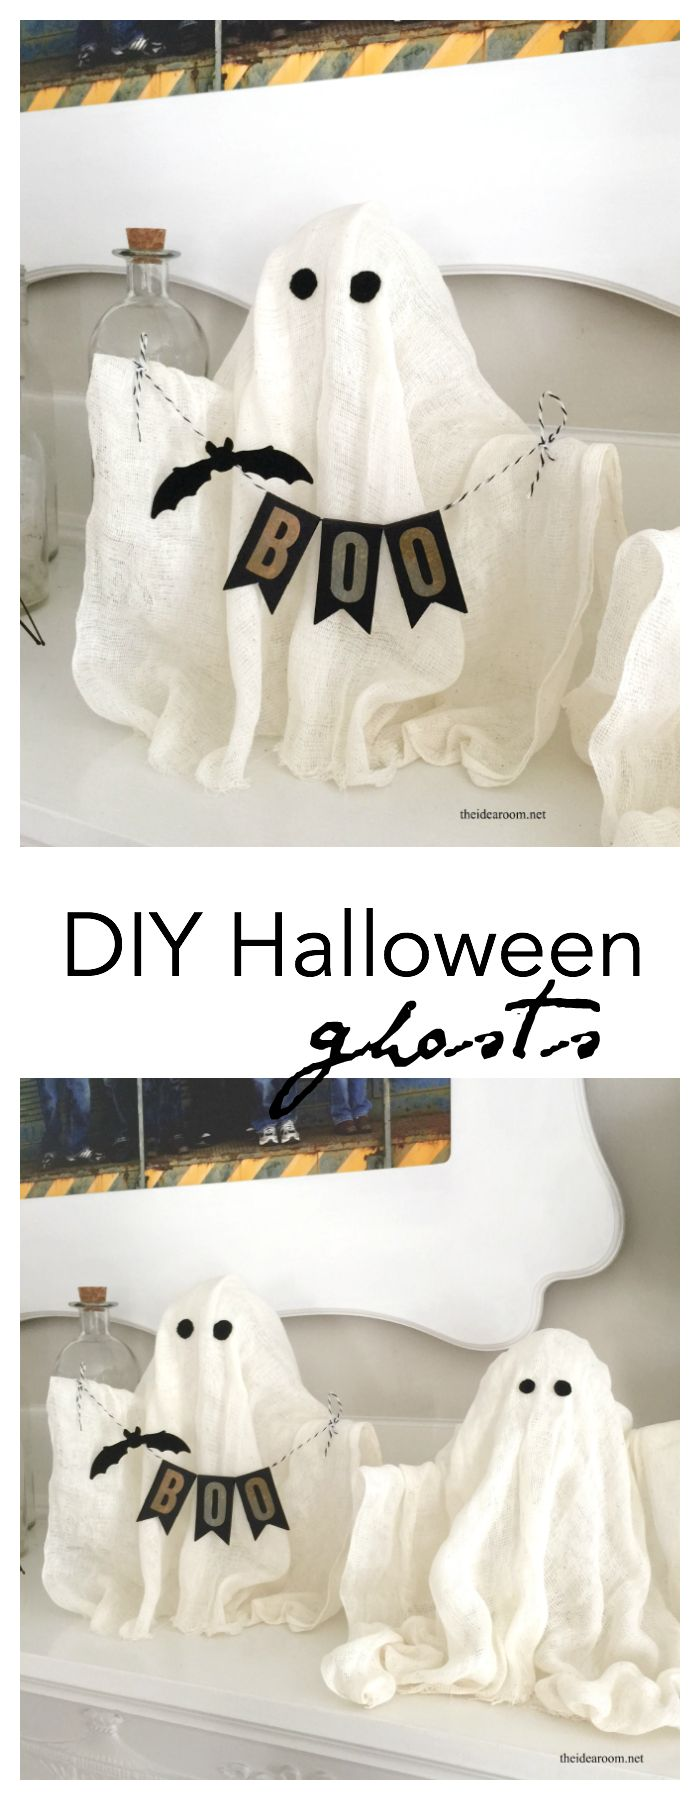 Best 25+ Cheese cloth ideas on Pinterest | Define halloween ...